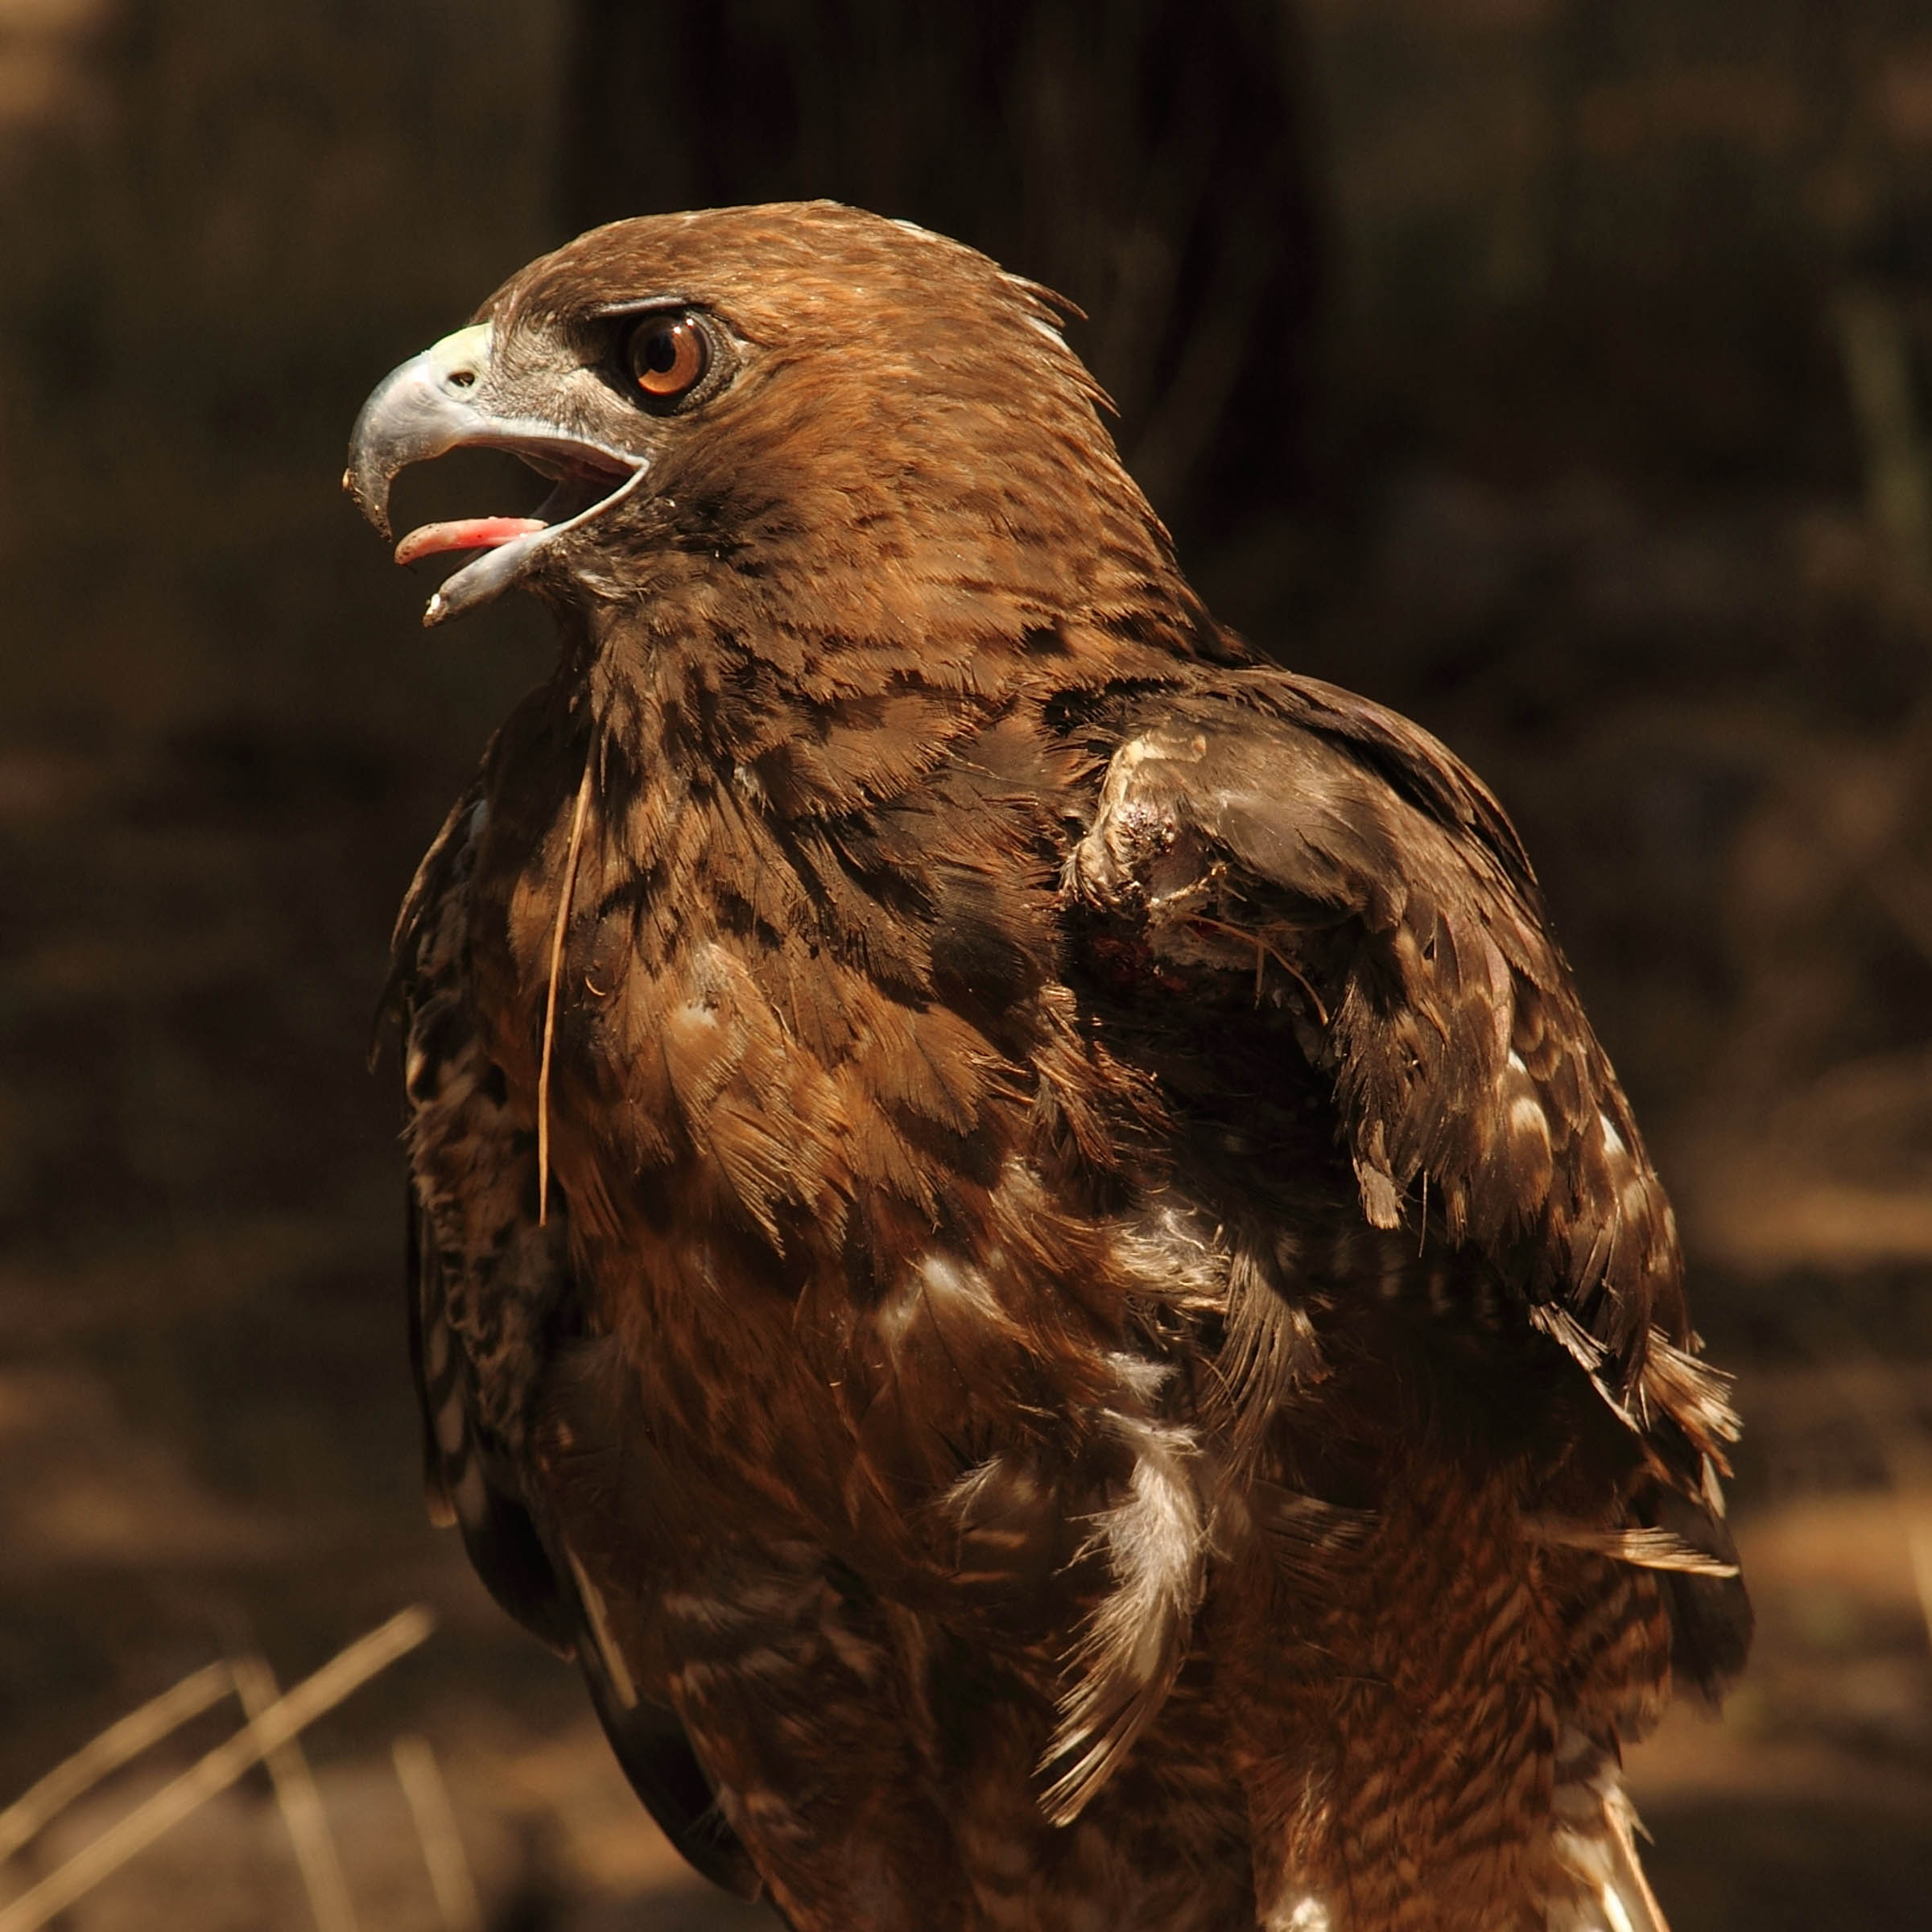 Sonja - Red Tailed Hawk (Buteo jamaicensis)